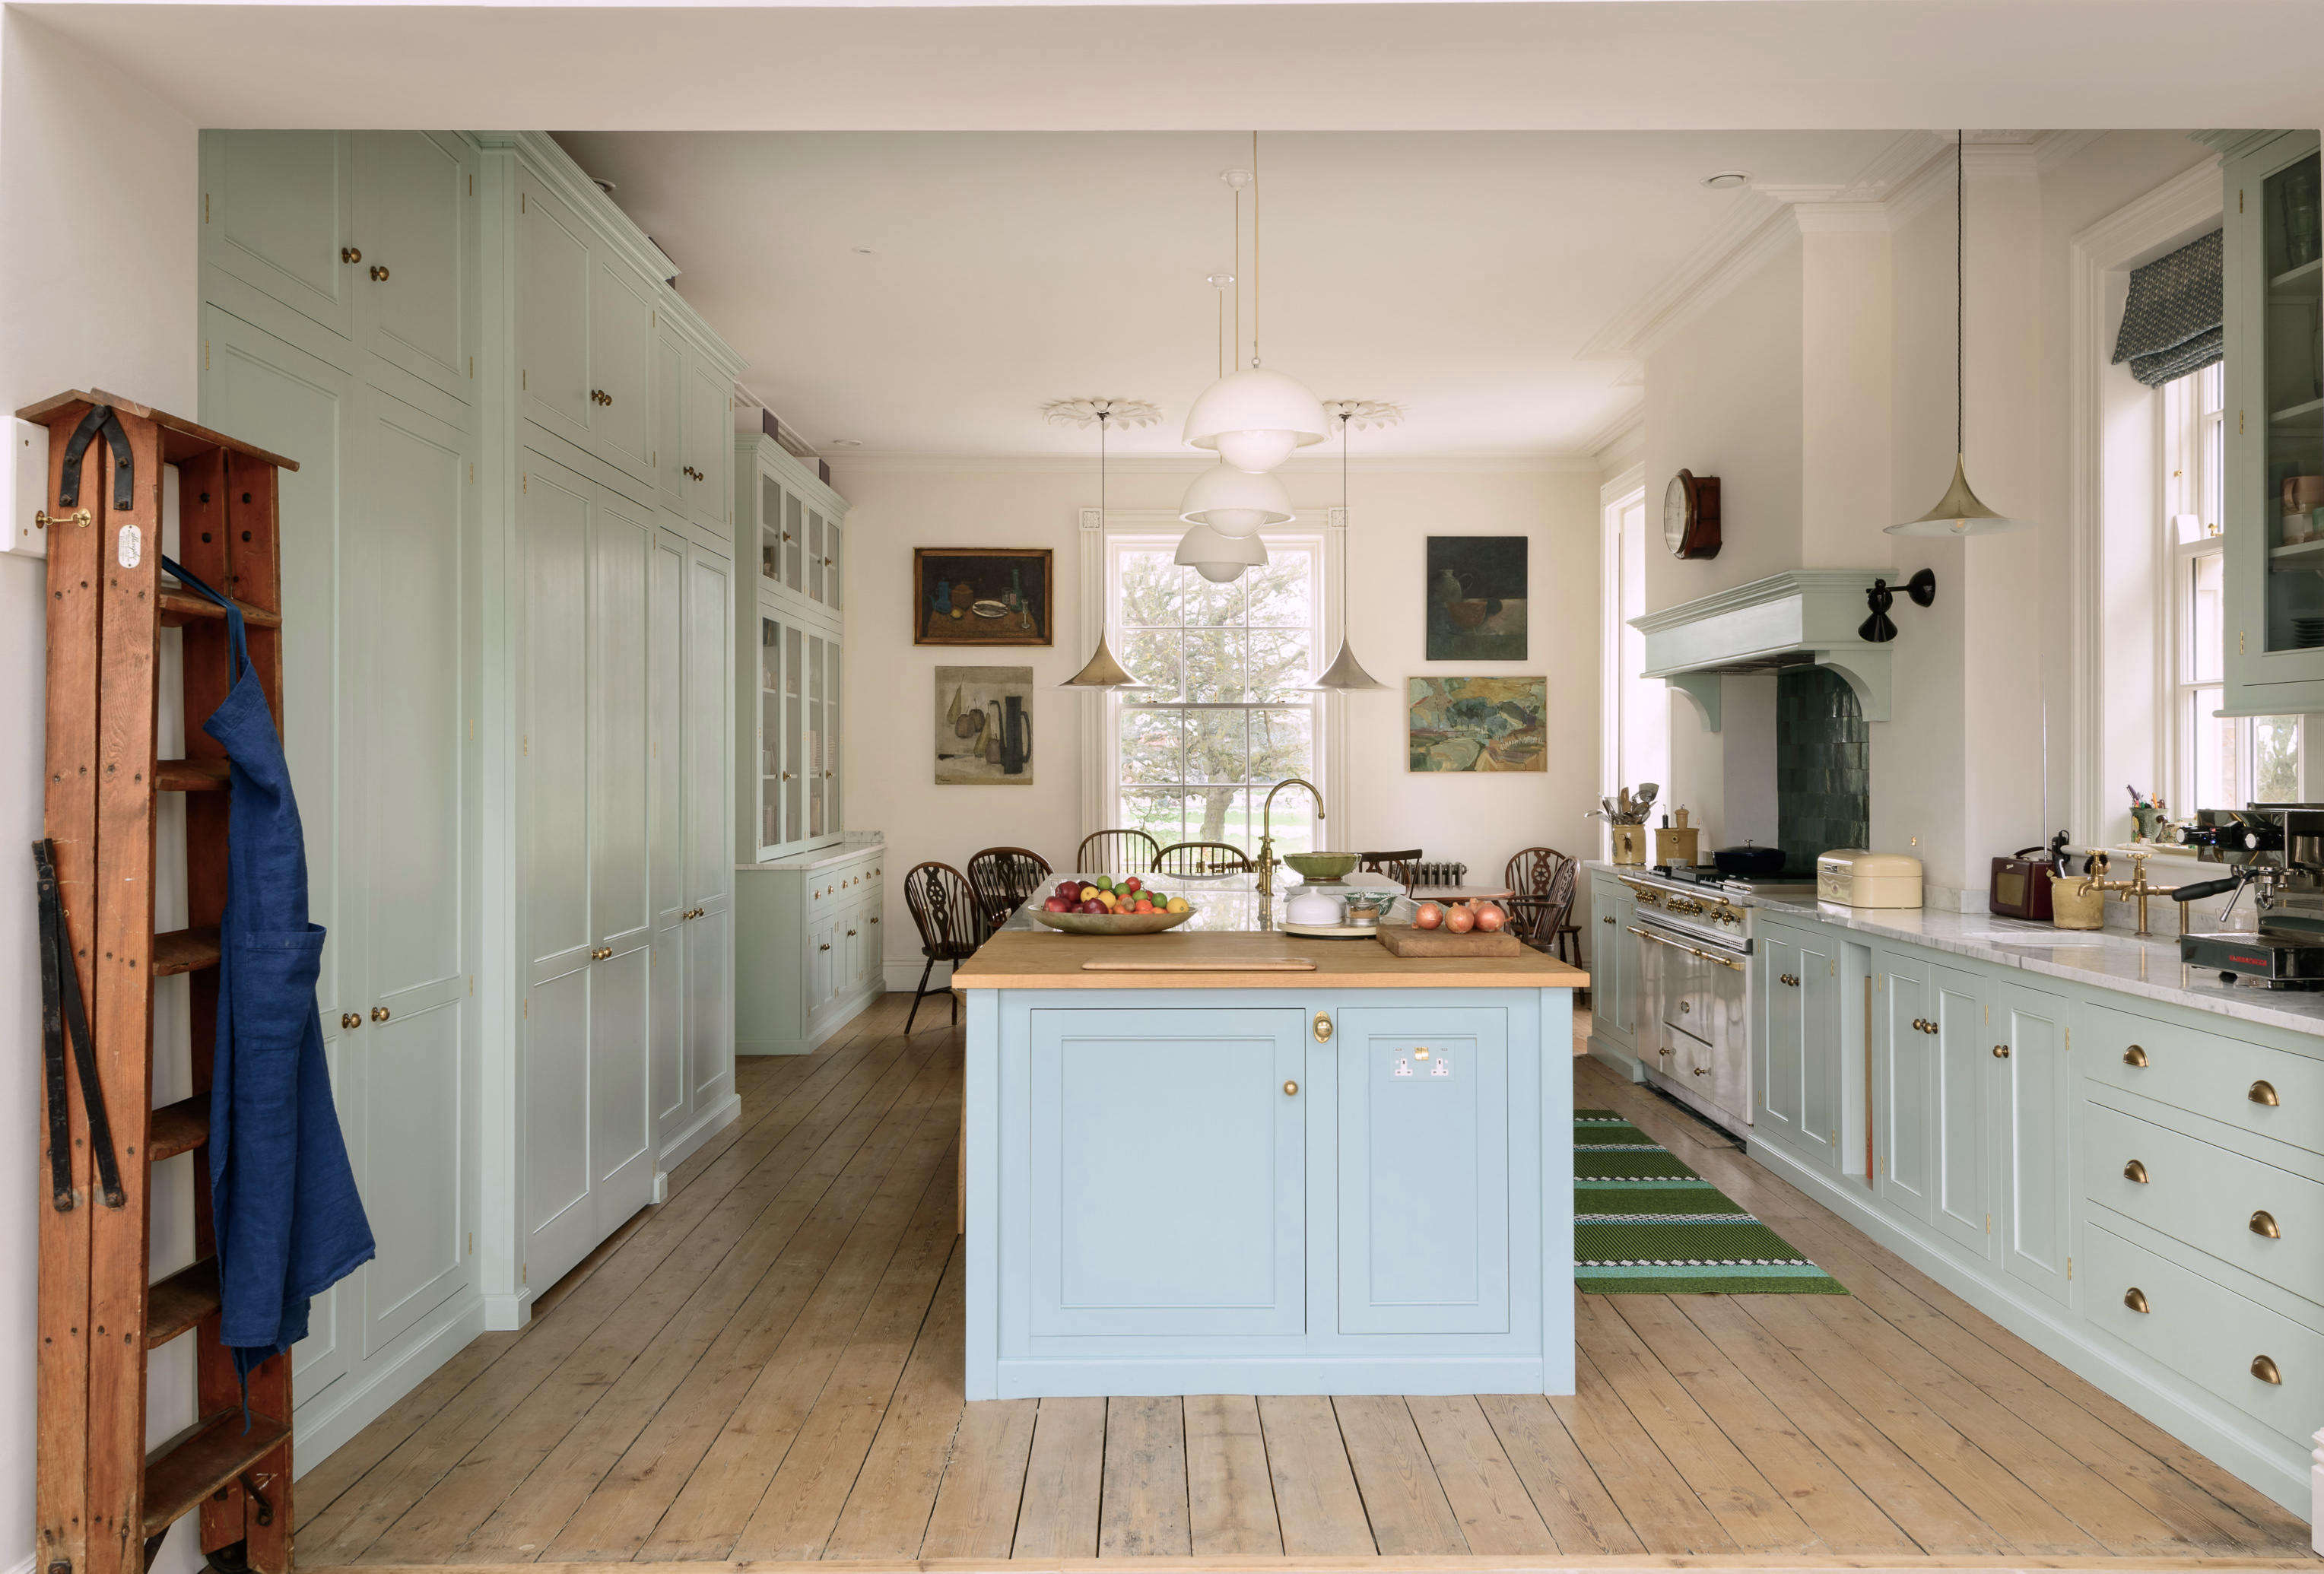 From Devol A Dream English Kitchen Size Extra Large For Family Living And Entertaining